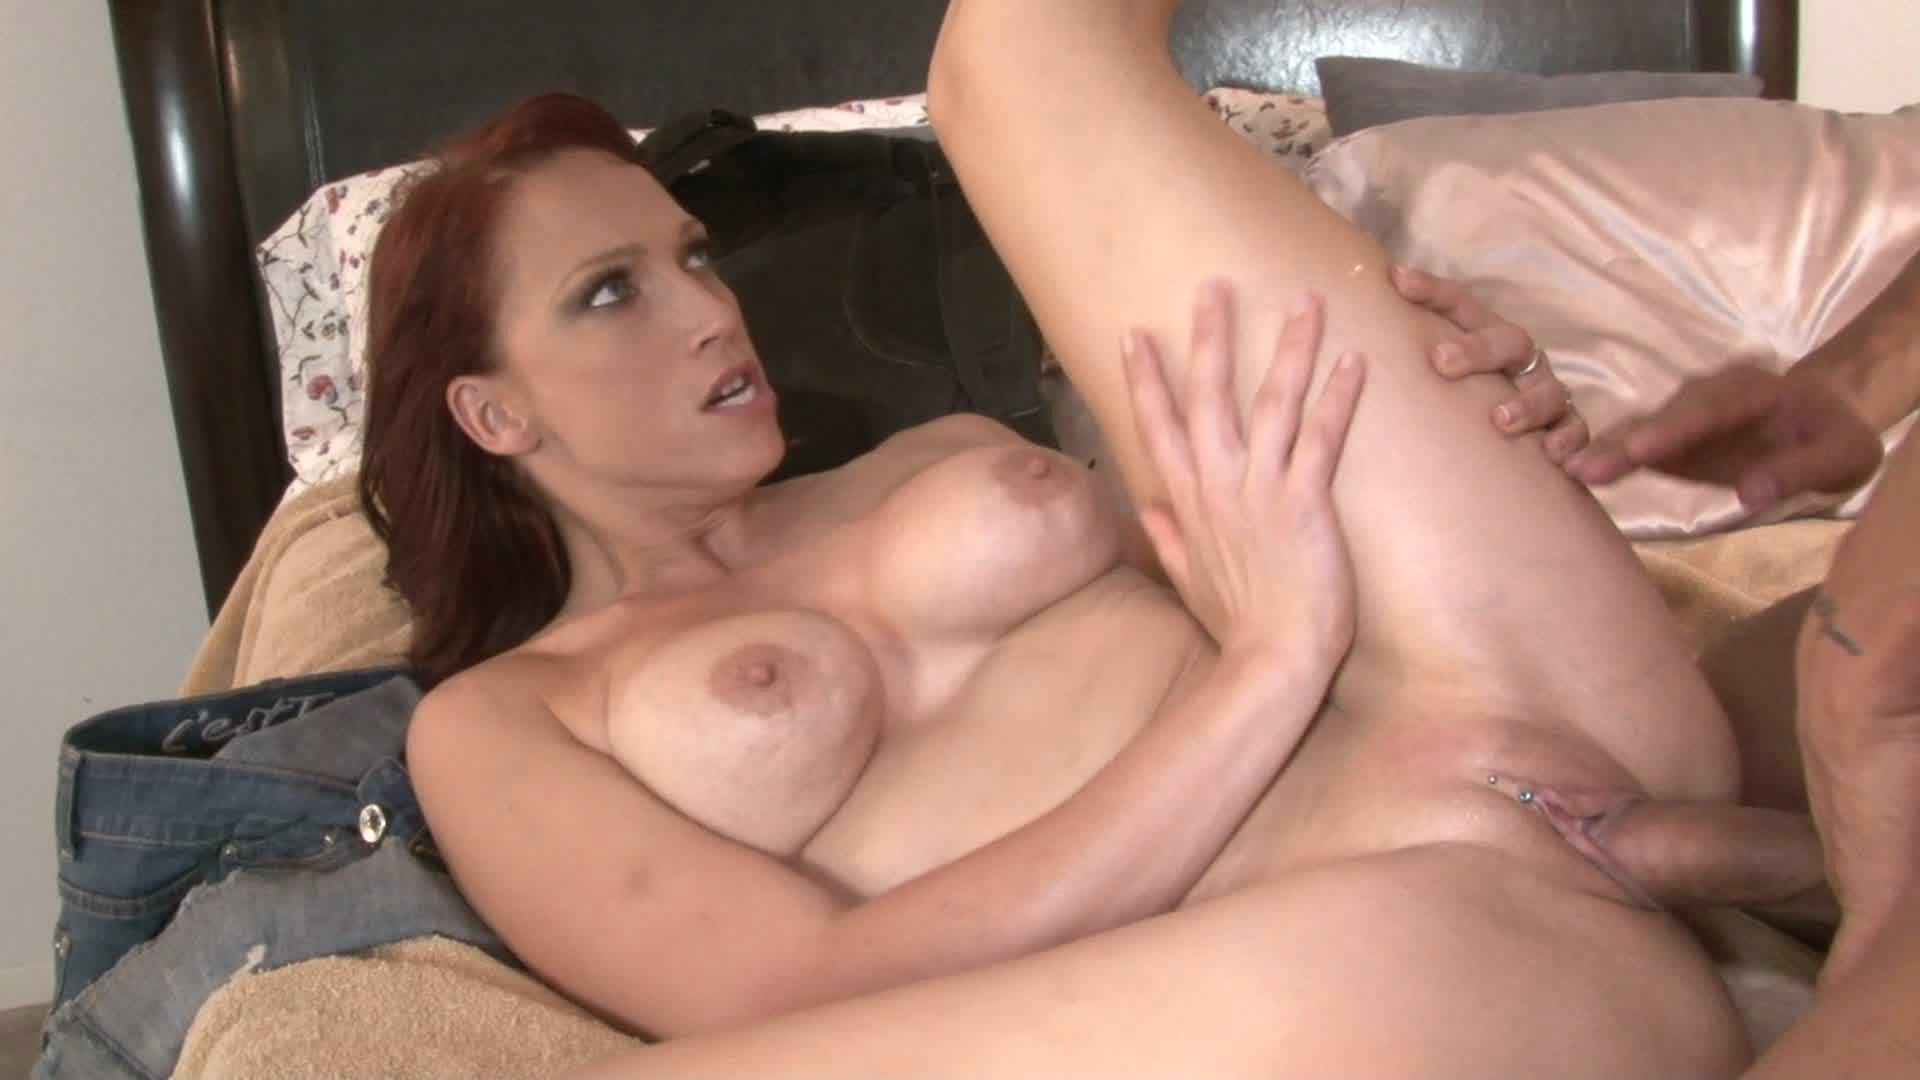 That Cougar Fucks Like An Animal 3 xvideos153806